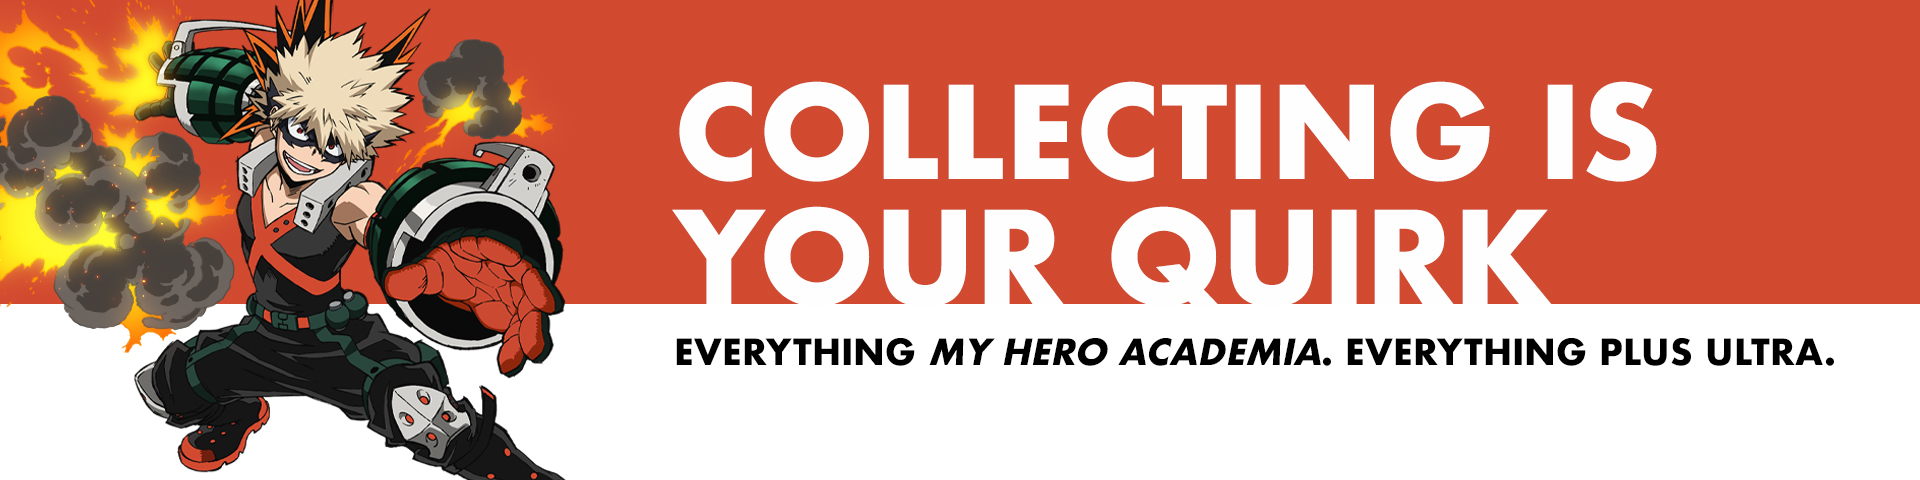 Collecting Is Your Quirk. Everything My Hero Academia. Everything Plus Ultra.